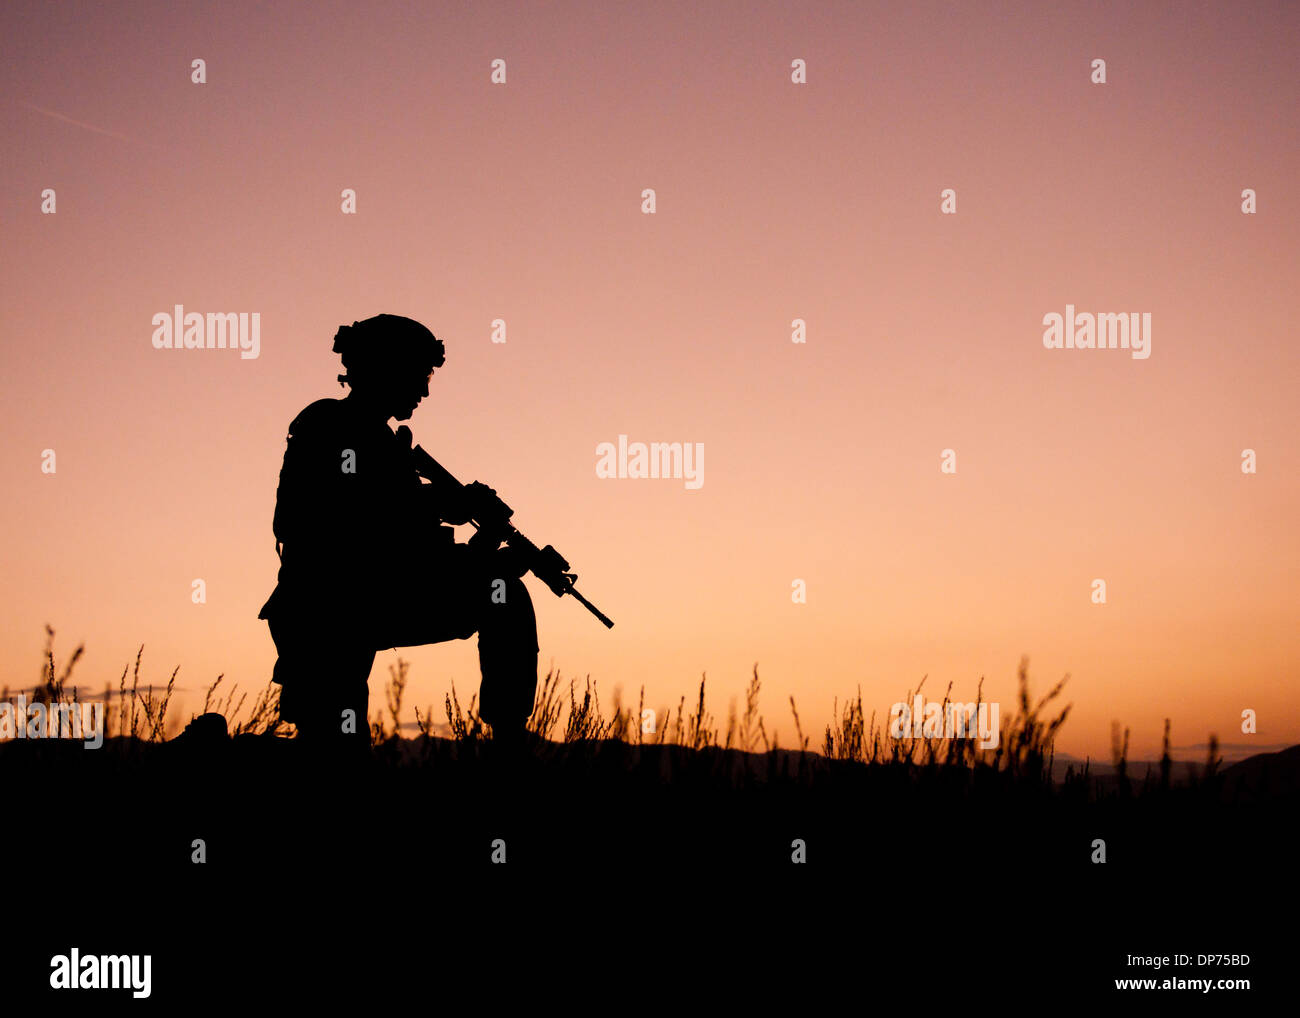 soldier silhouette dusk stock photos soldier silhouette dusk stock